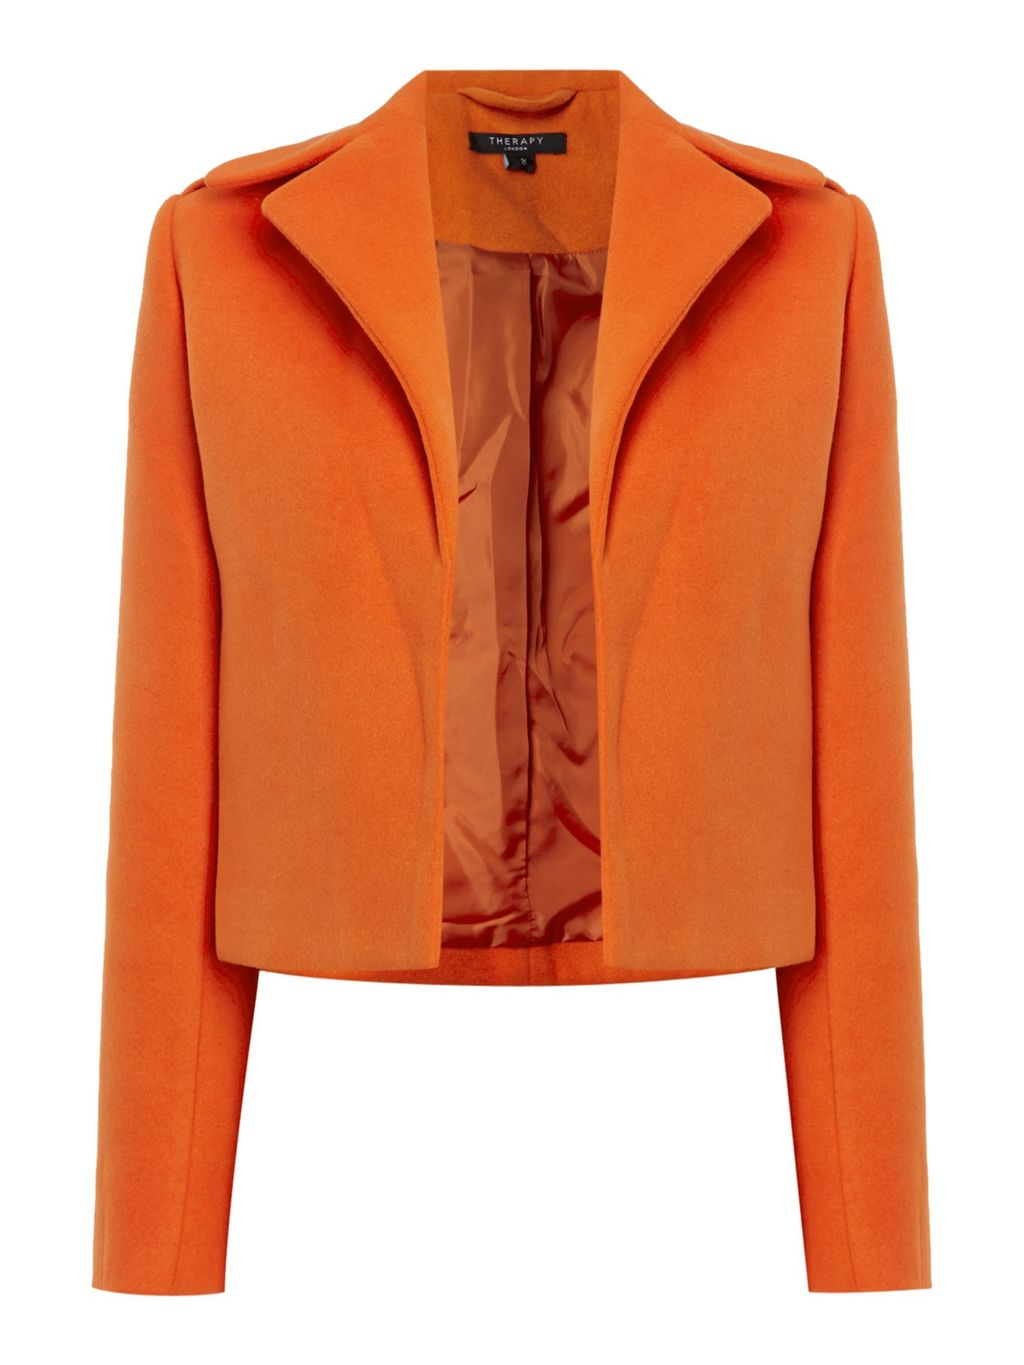 Jayden Crop Jacket, Orange - pattern: plain; style: single breasted blazer; collar: standard lapel/rever collar; predominant colour: bright orange; occasions: casual, creative work; fit: straight cut (boxy); fibres: wool - mix; sleeve length: long sleeve; sleeve style: standard; collar break: low/open; pattern type: fabric; texture group: woven light midweight; length: cropped; season: a/w 2016; wardrobe: highlight